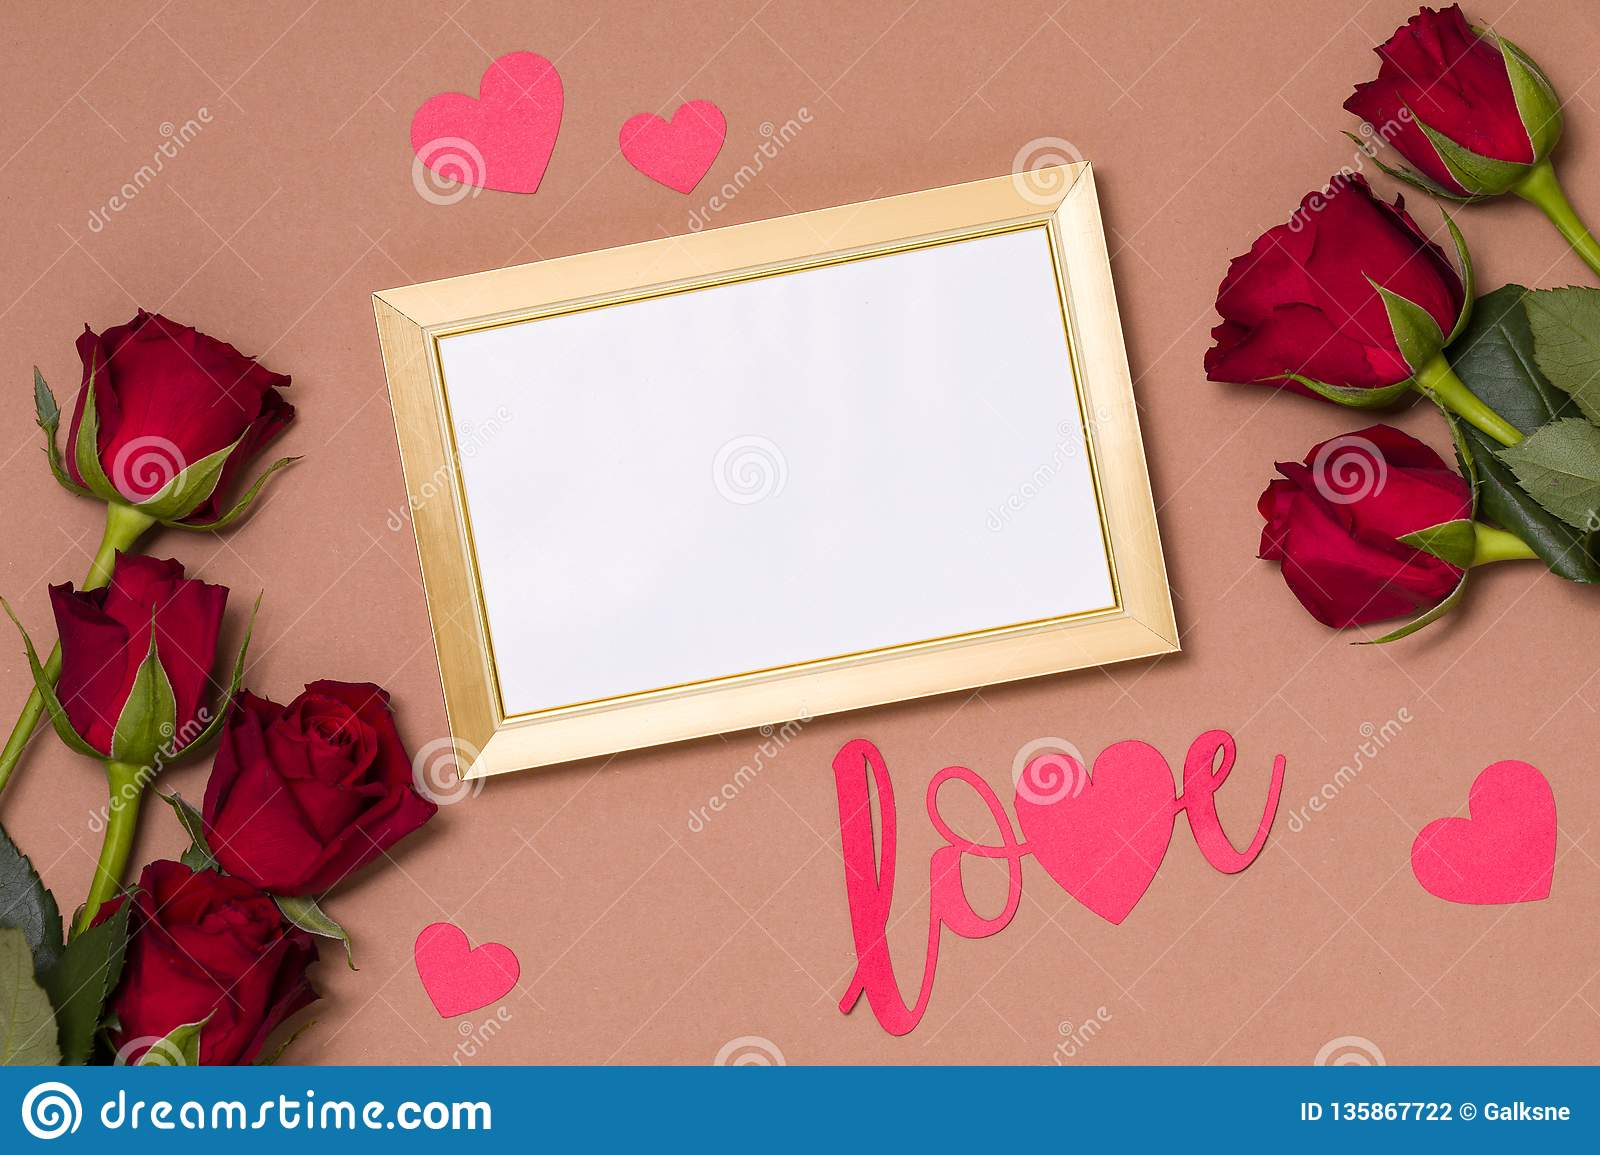 Valentines Day Empty Frame Love Nude Background Gift Red